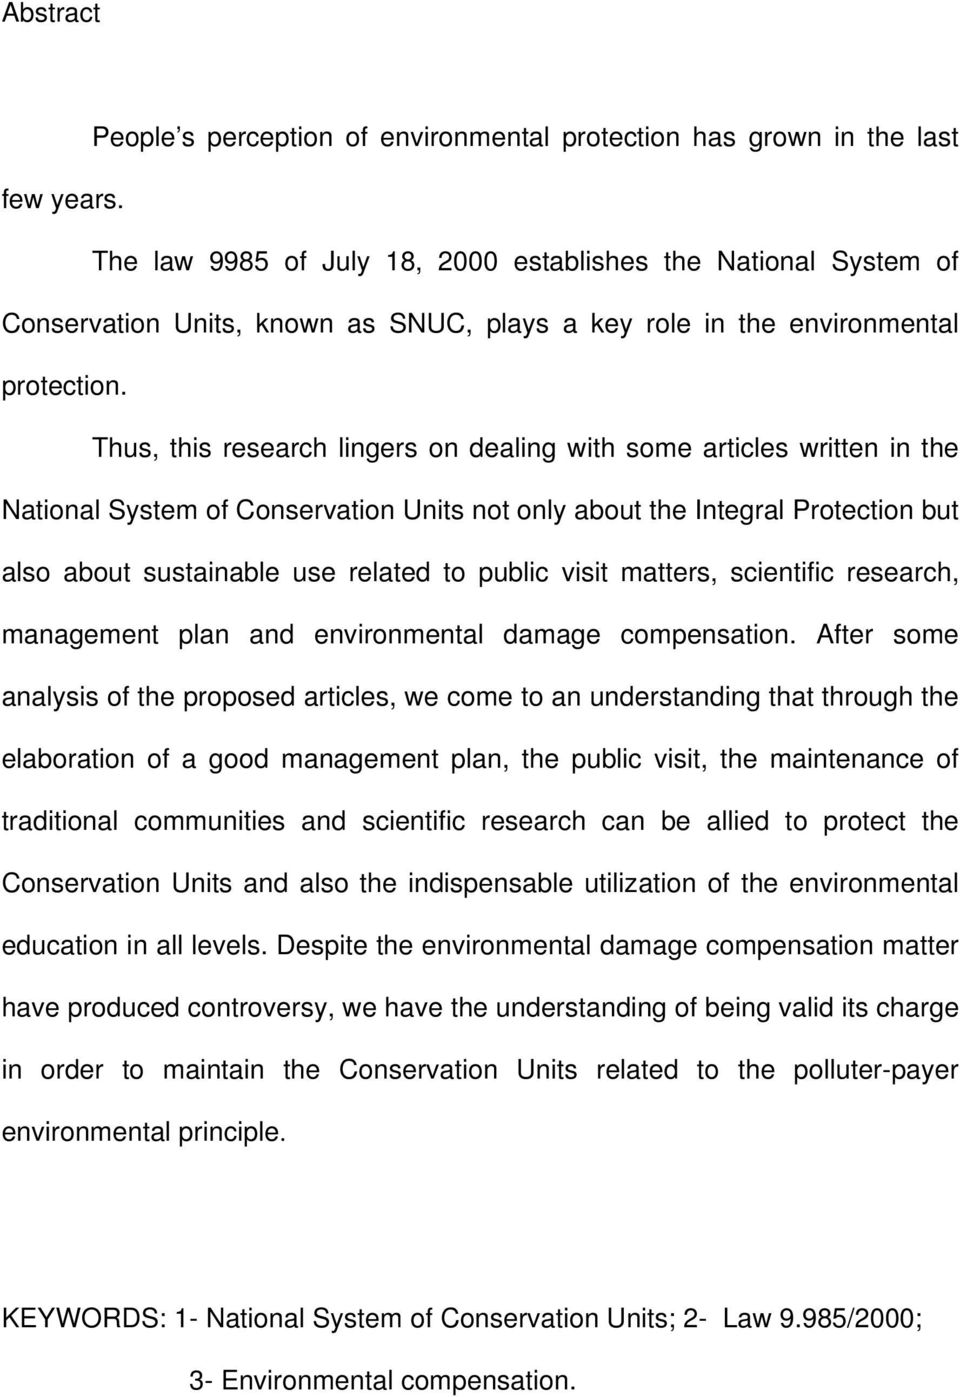 Thus, this research lingers on dealing with some articles written in the National System of Conservation Units not only about the Integral Protection but also about sustainable use related to public